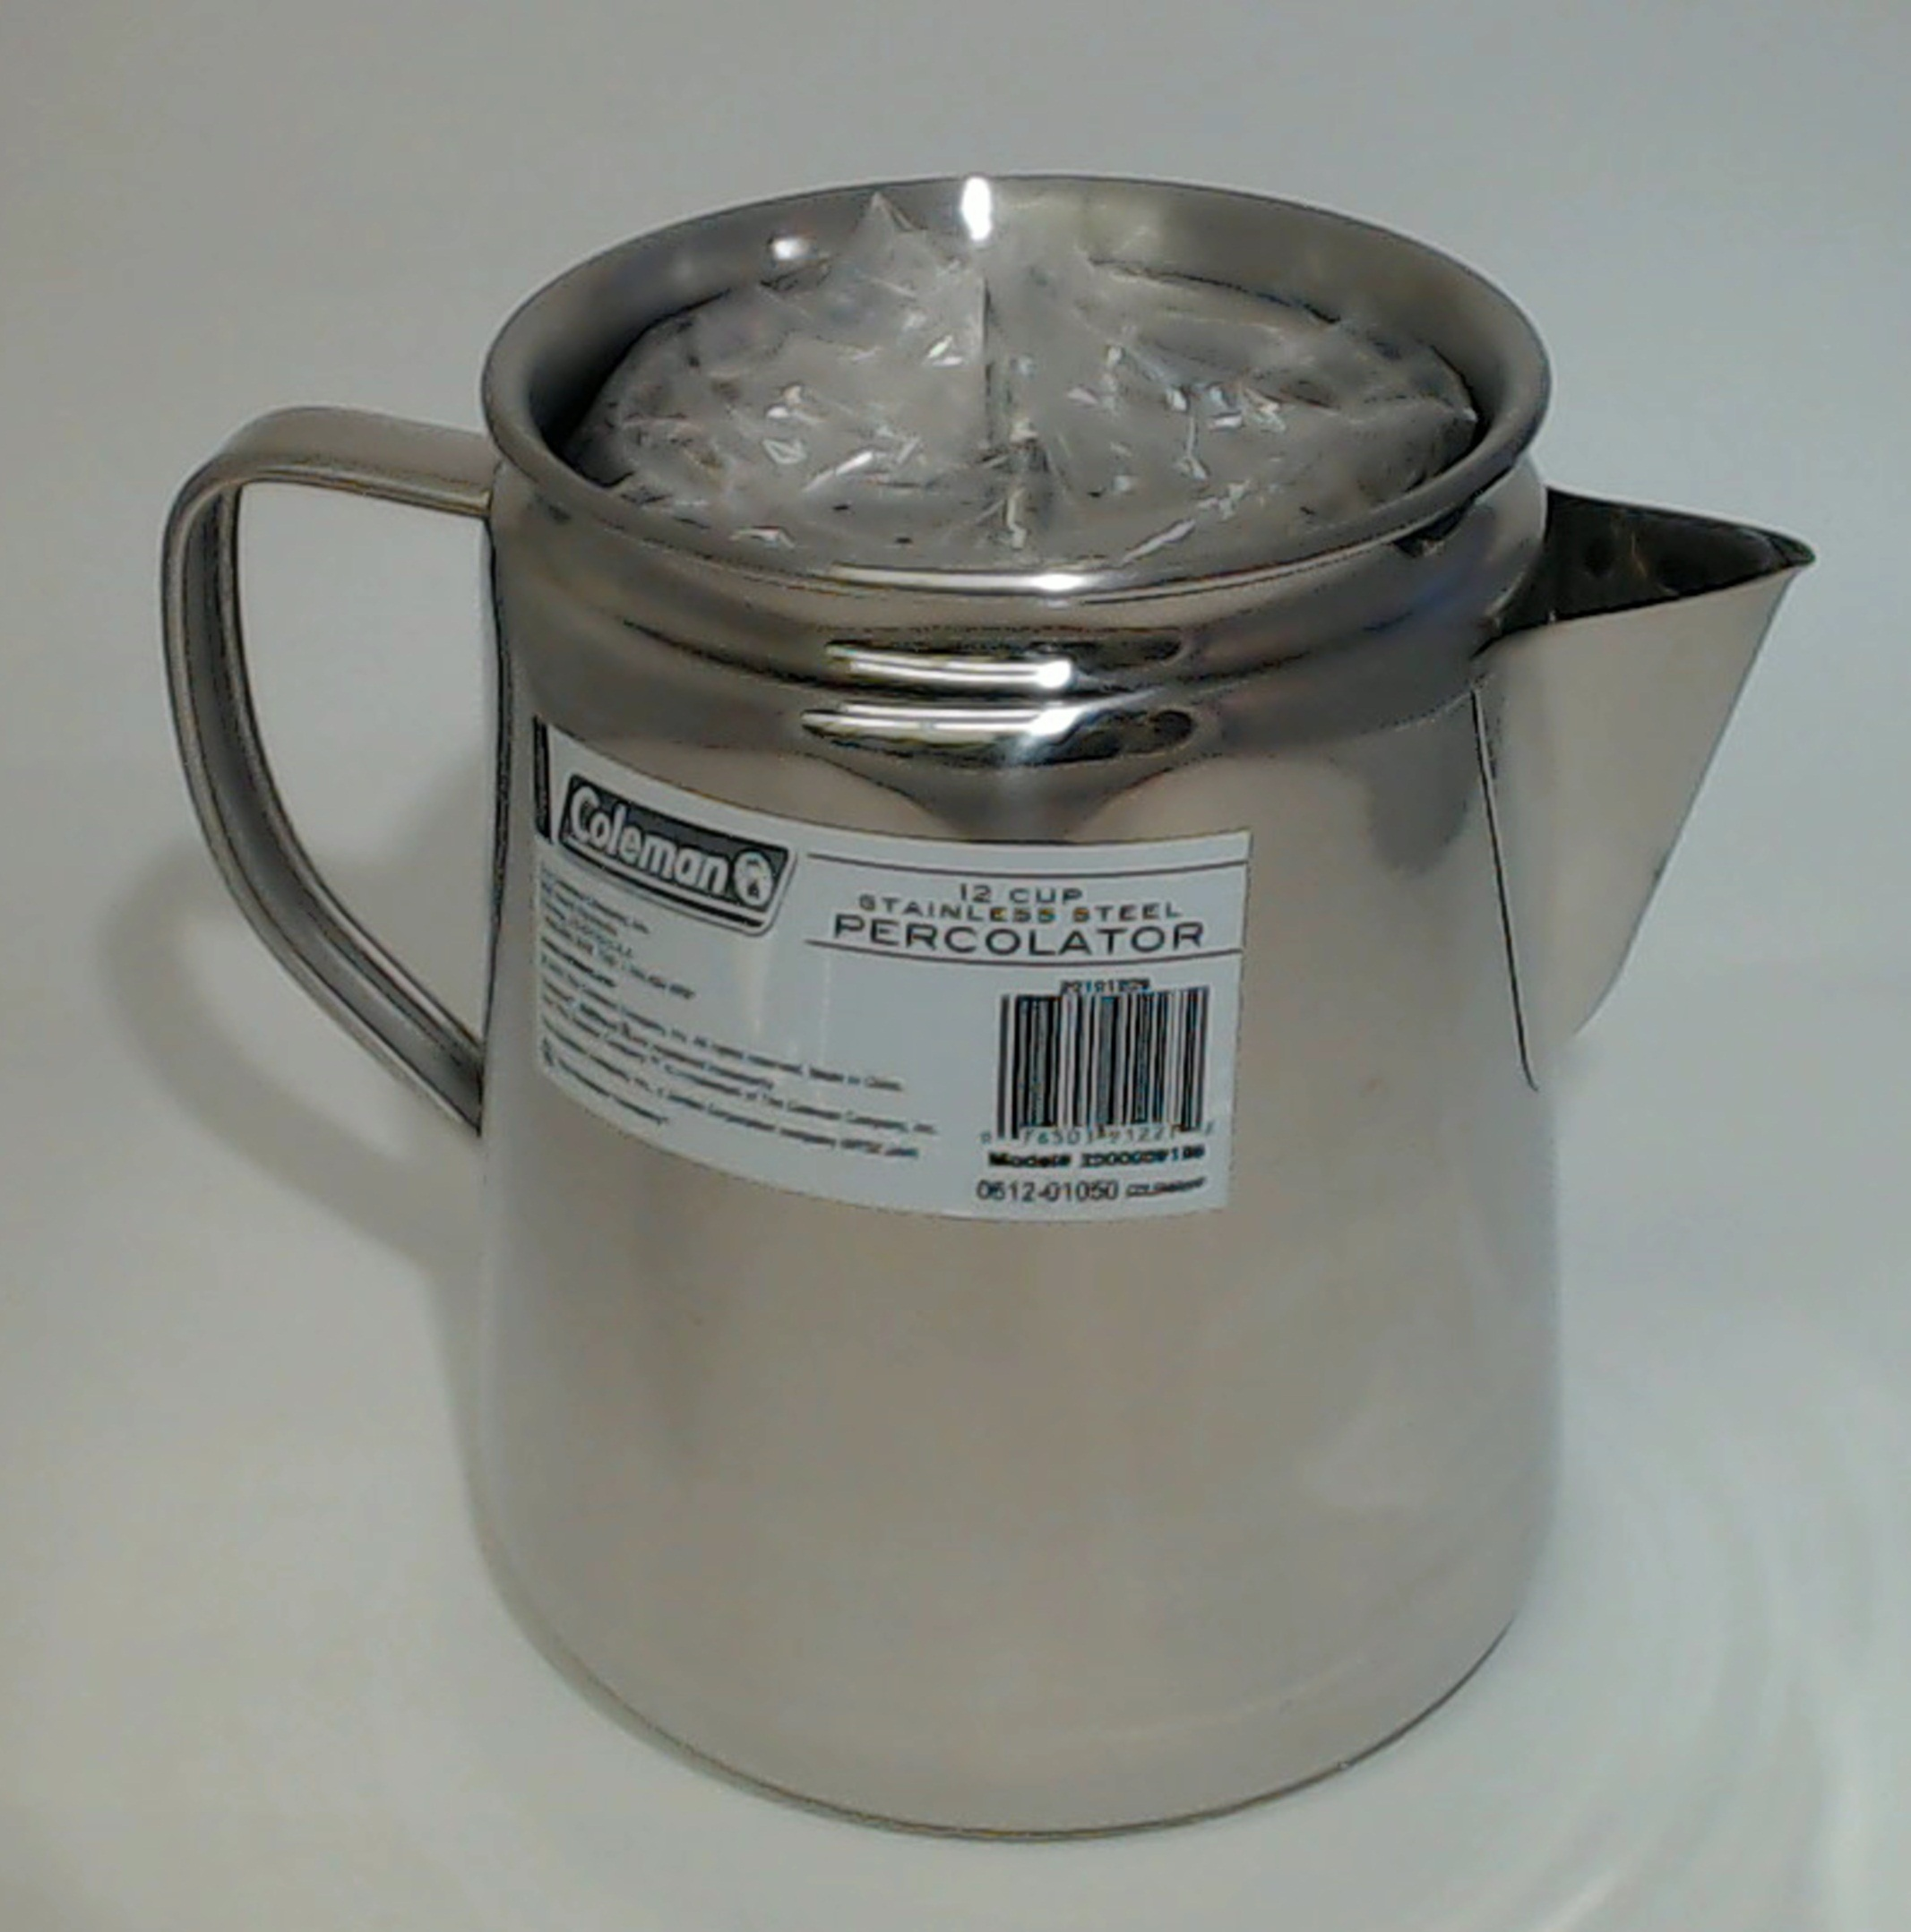 details about new missing lid coleman 12 cup stainless steel coffee